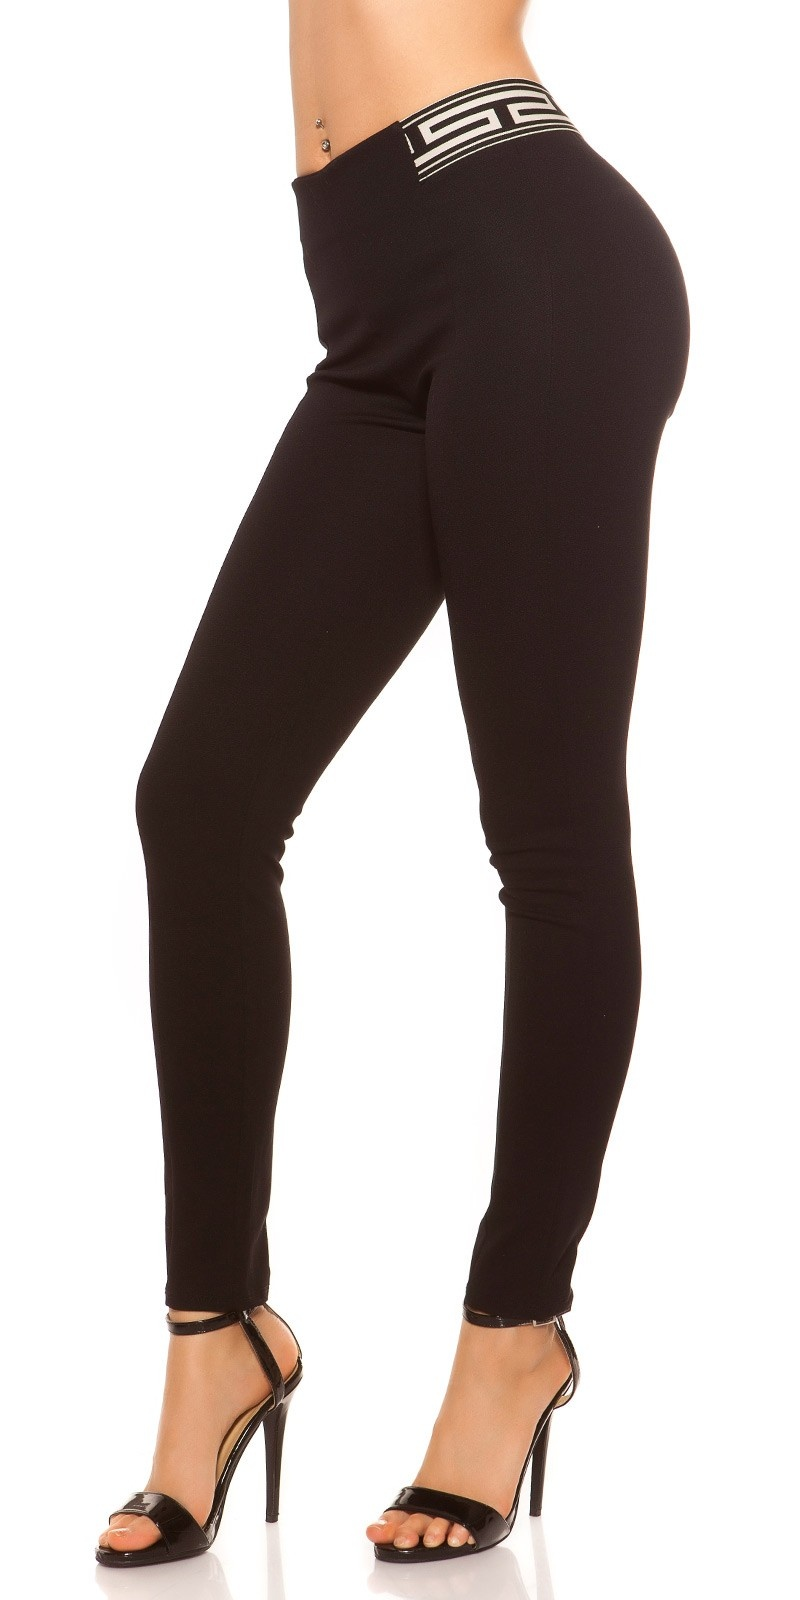 Sexy Highwaist Leggings with Pattern Black